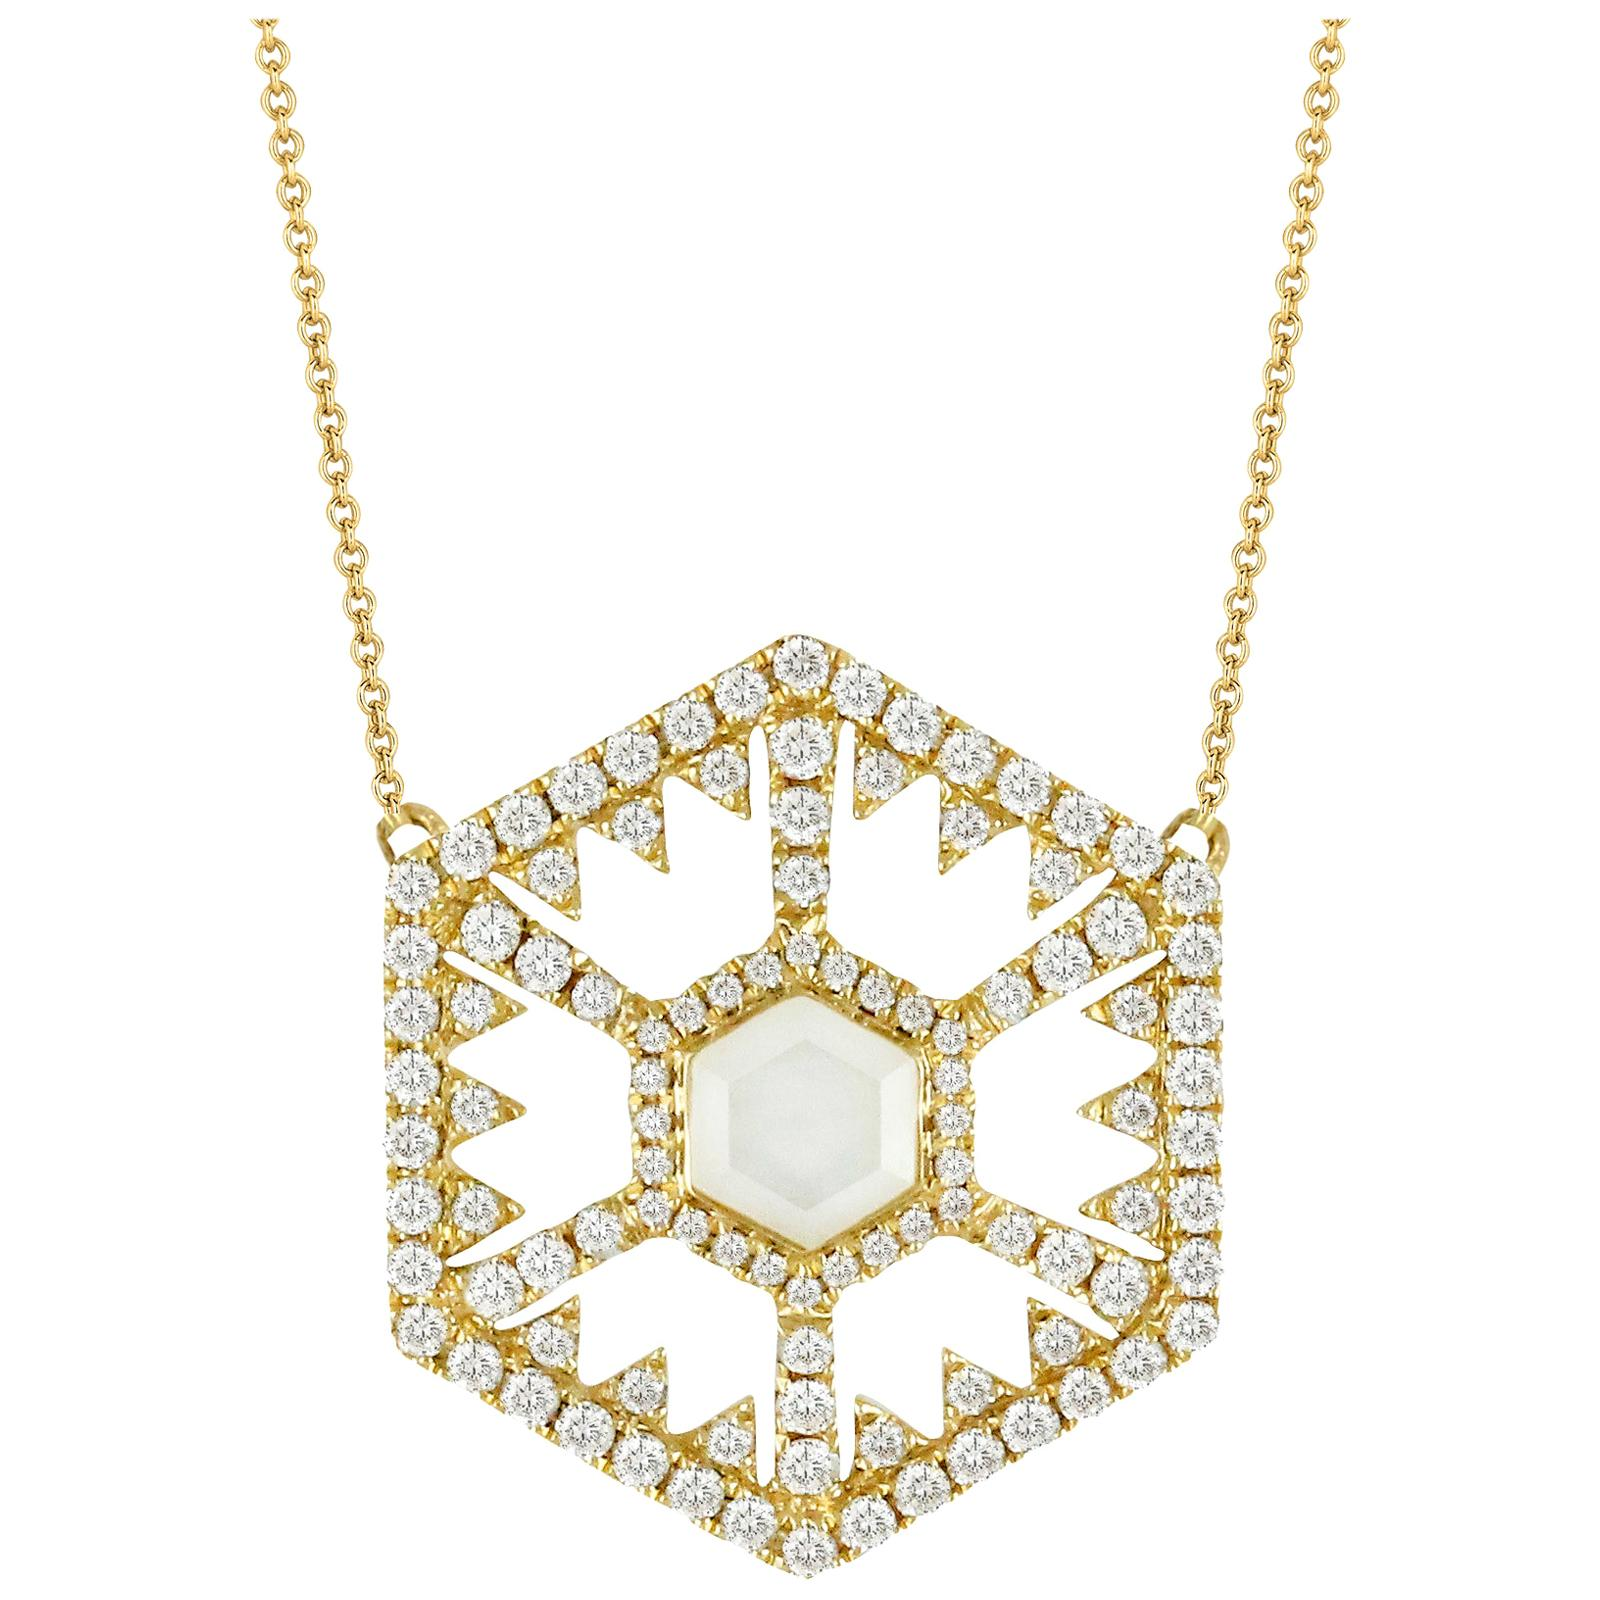 18K Gold Hexagon Fashion Necklace with White Mother of Pearl Quartz and Diamonds